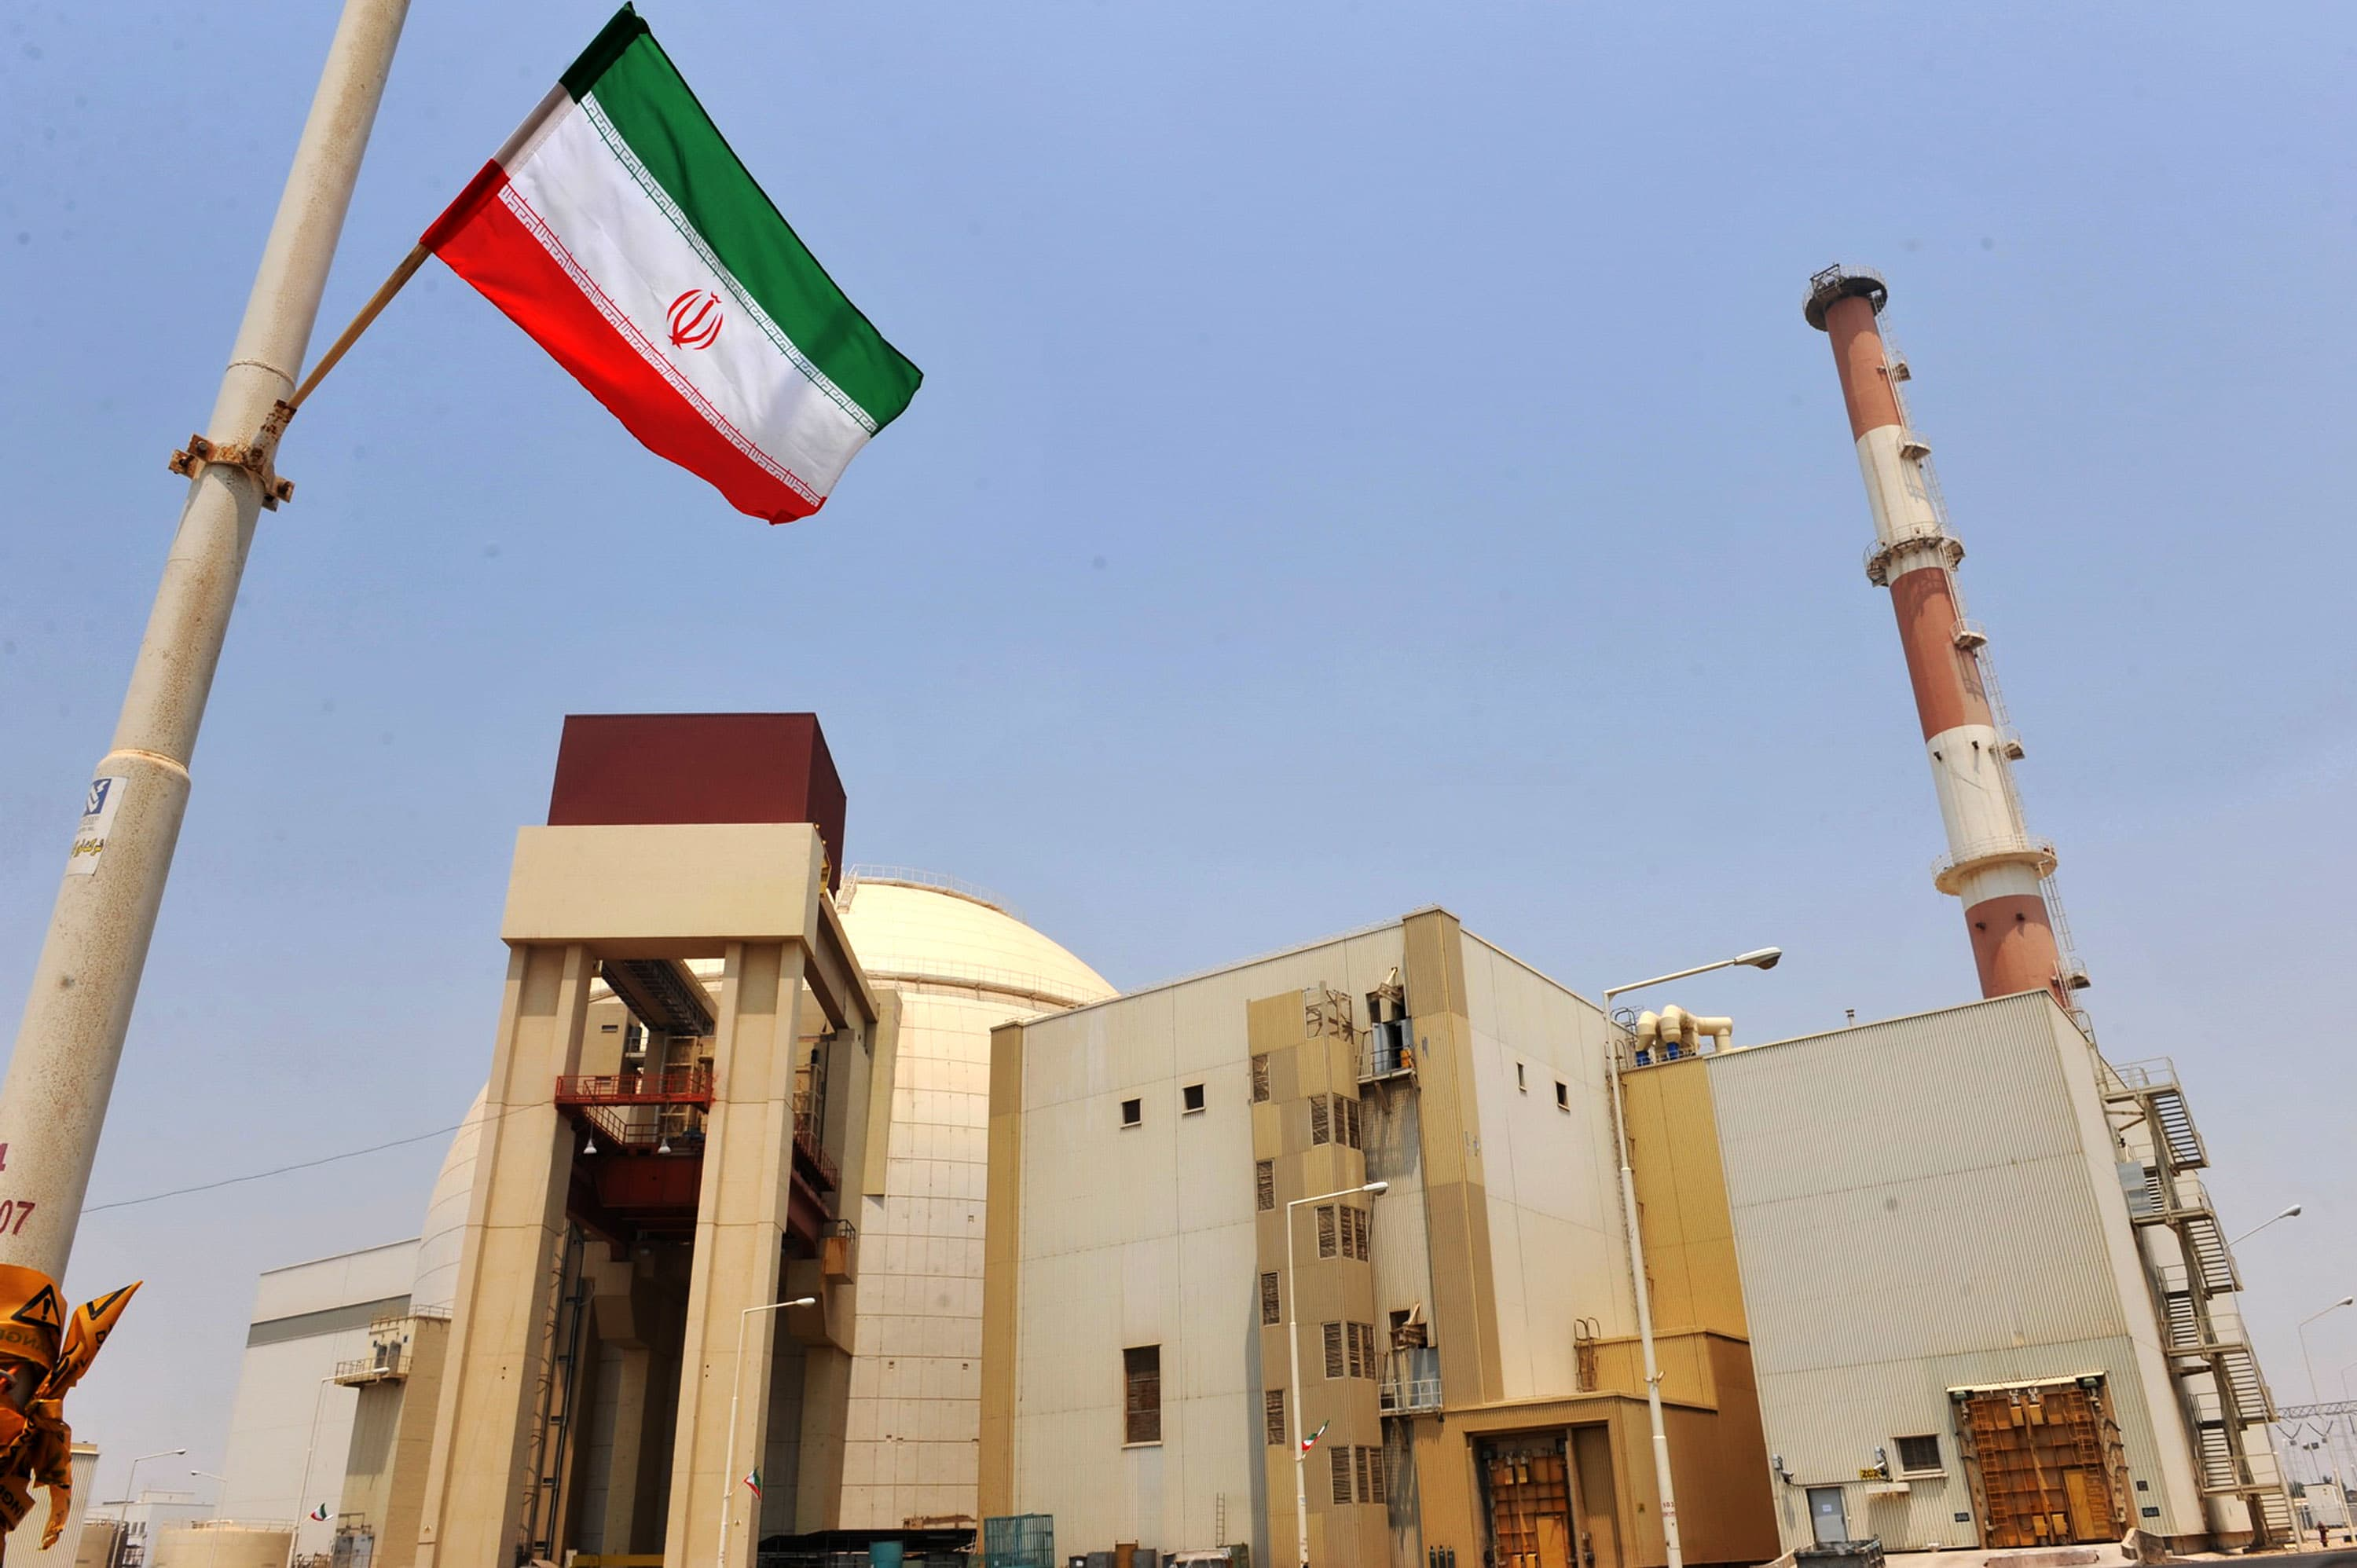 Iran breaches 2015 nuclear deal's stockpile limit: Sources